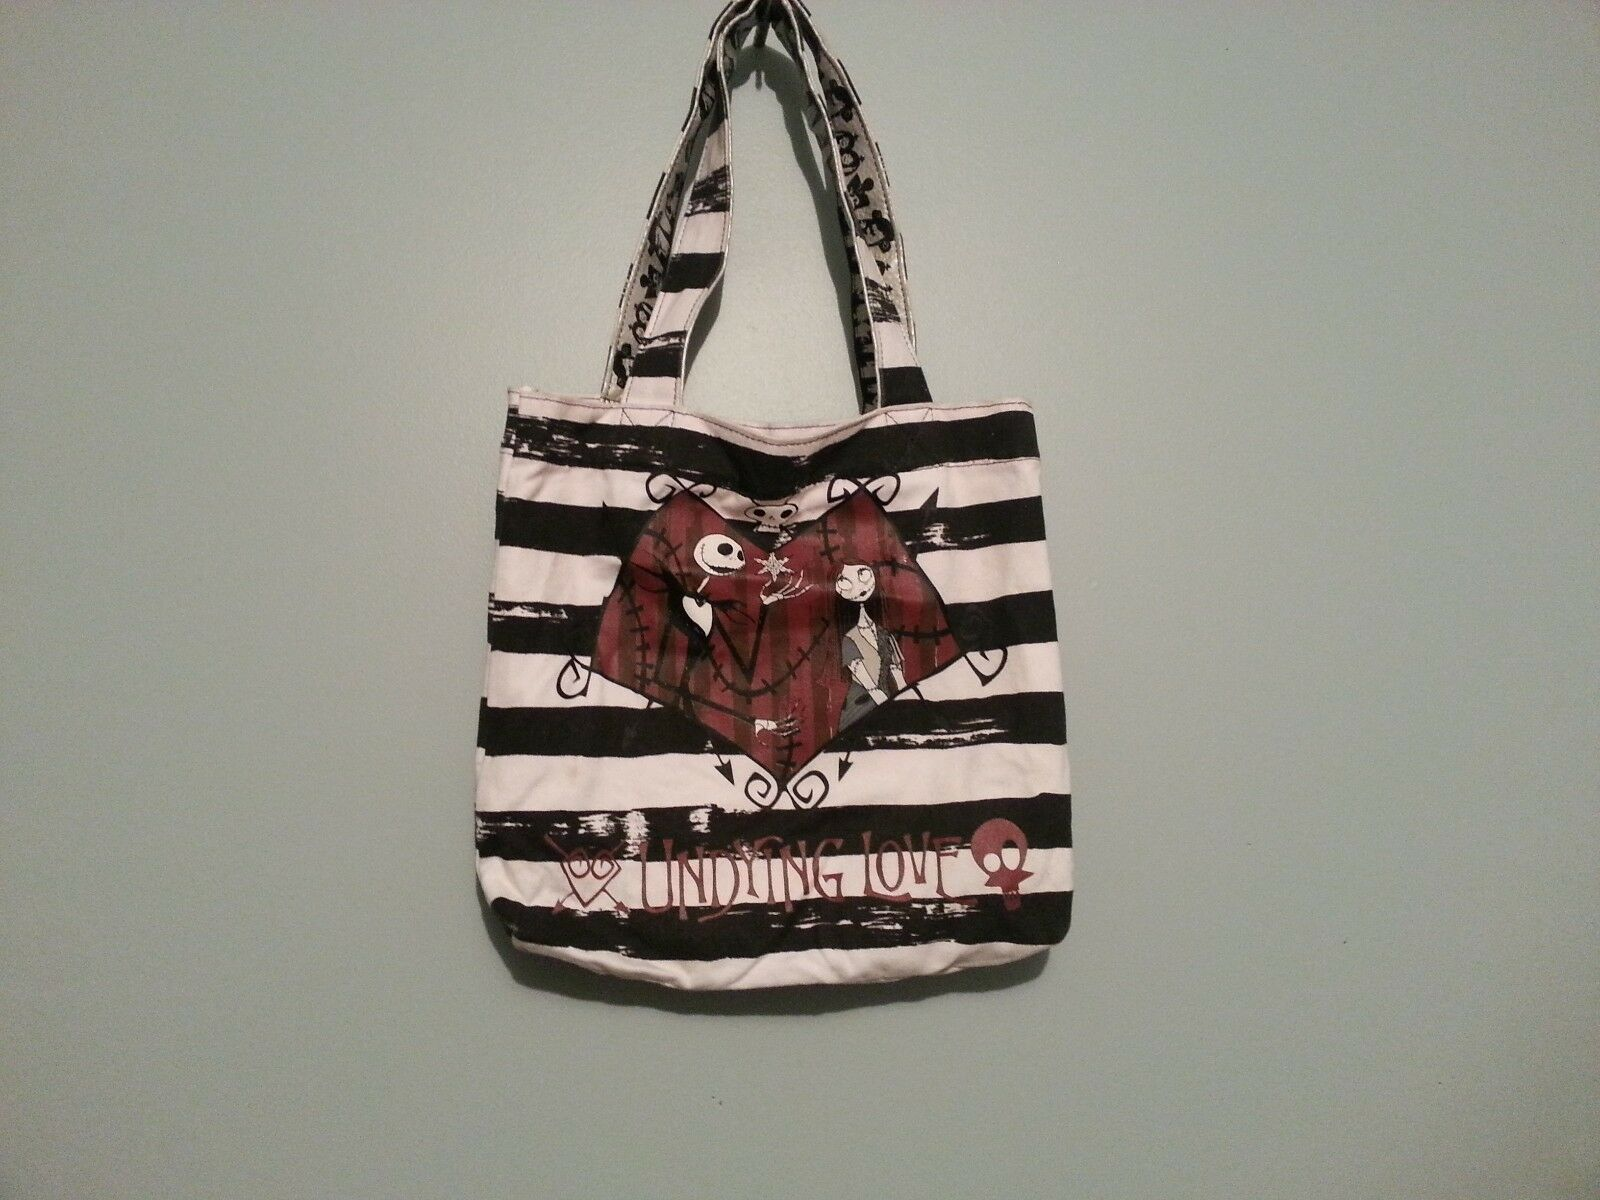 THE NIGHTMARE BEFORE Christmas Purse - $30.00   PicClick